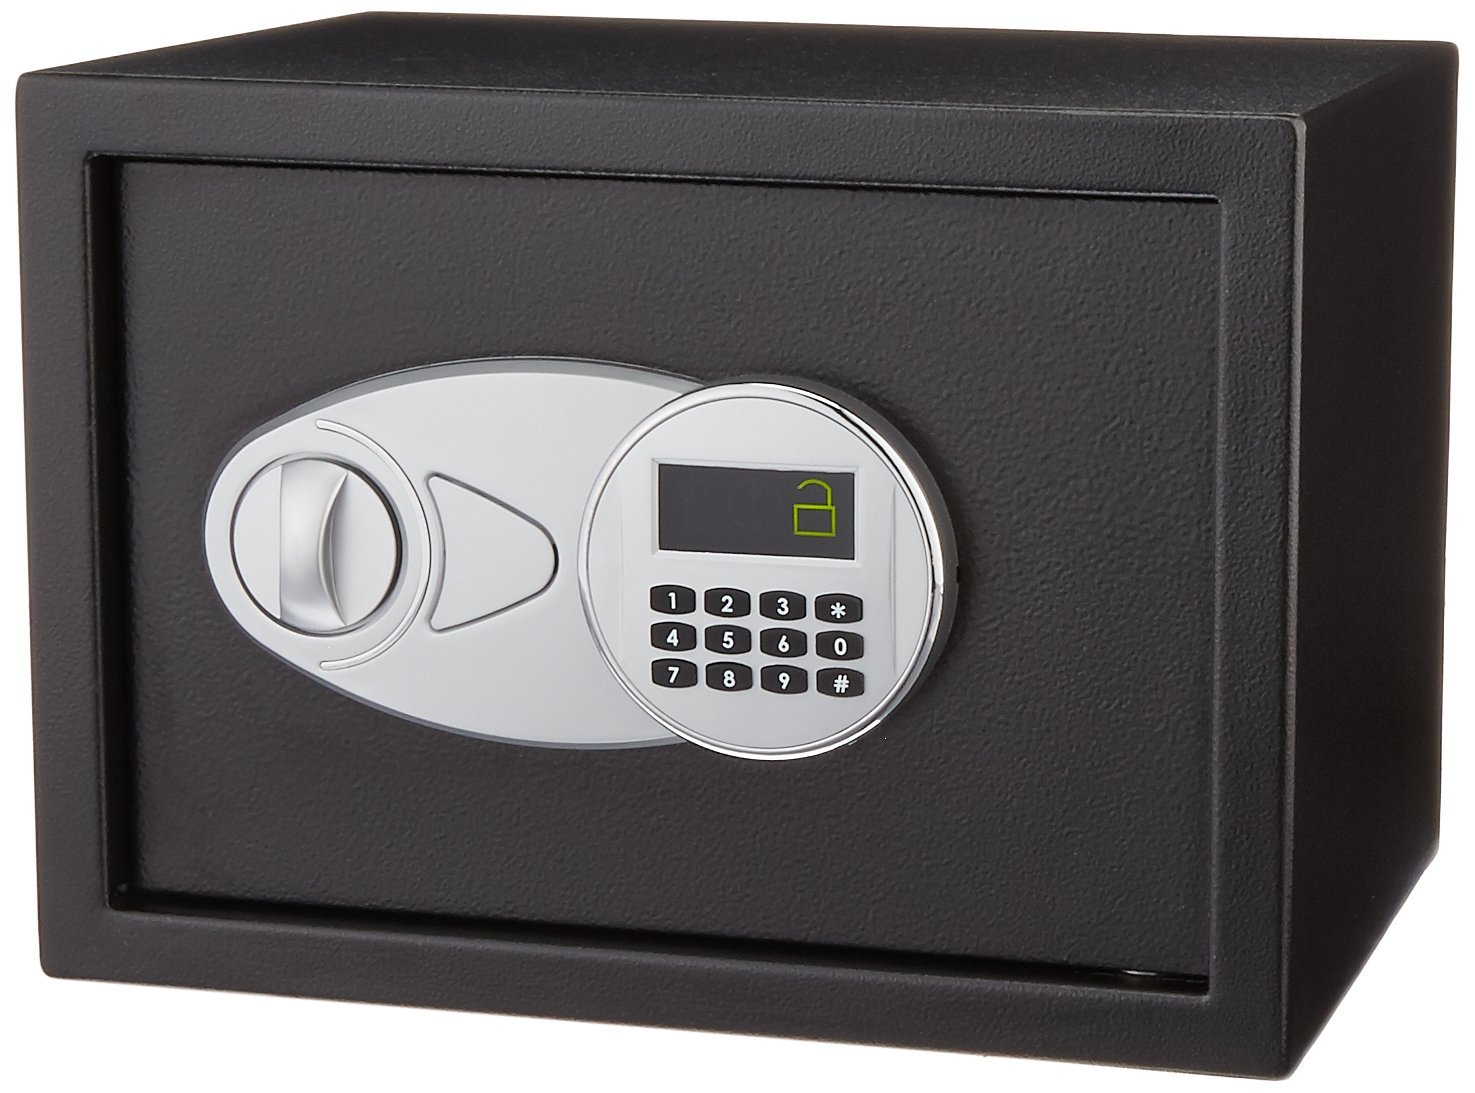 check out the features of the AmazonBasics Security Safe 0.5 Cubic Feet shown here?